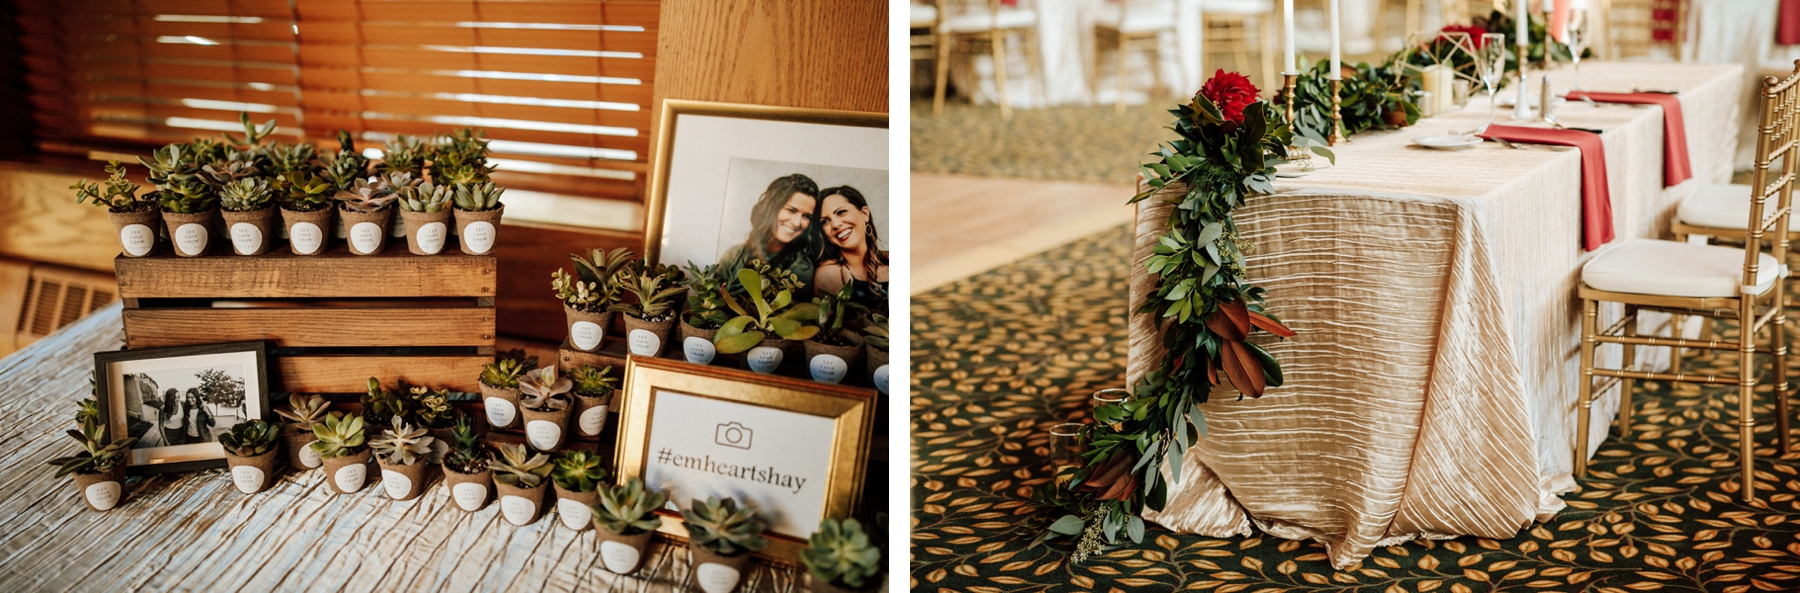 holiday valley ellicottville new york destination wedding photographer lgbtq